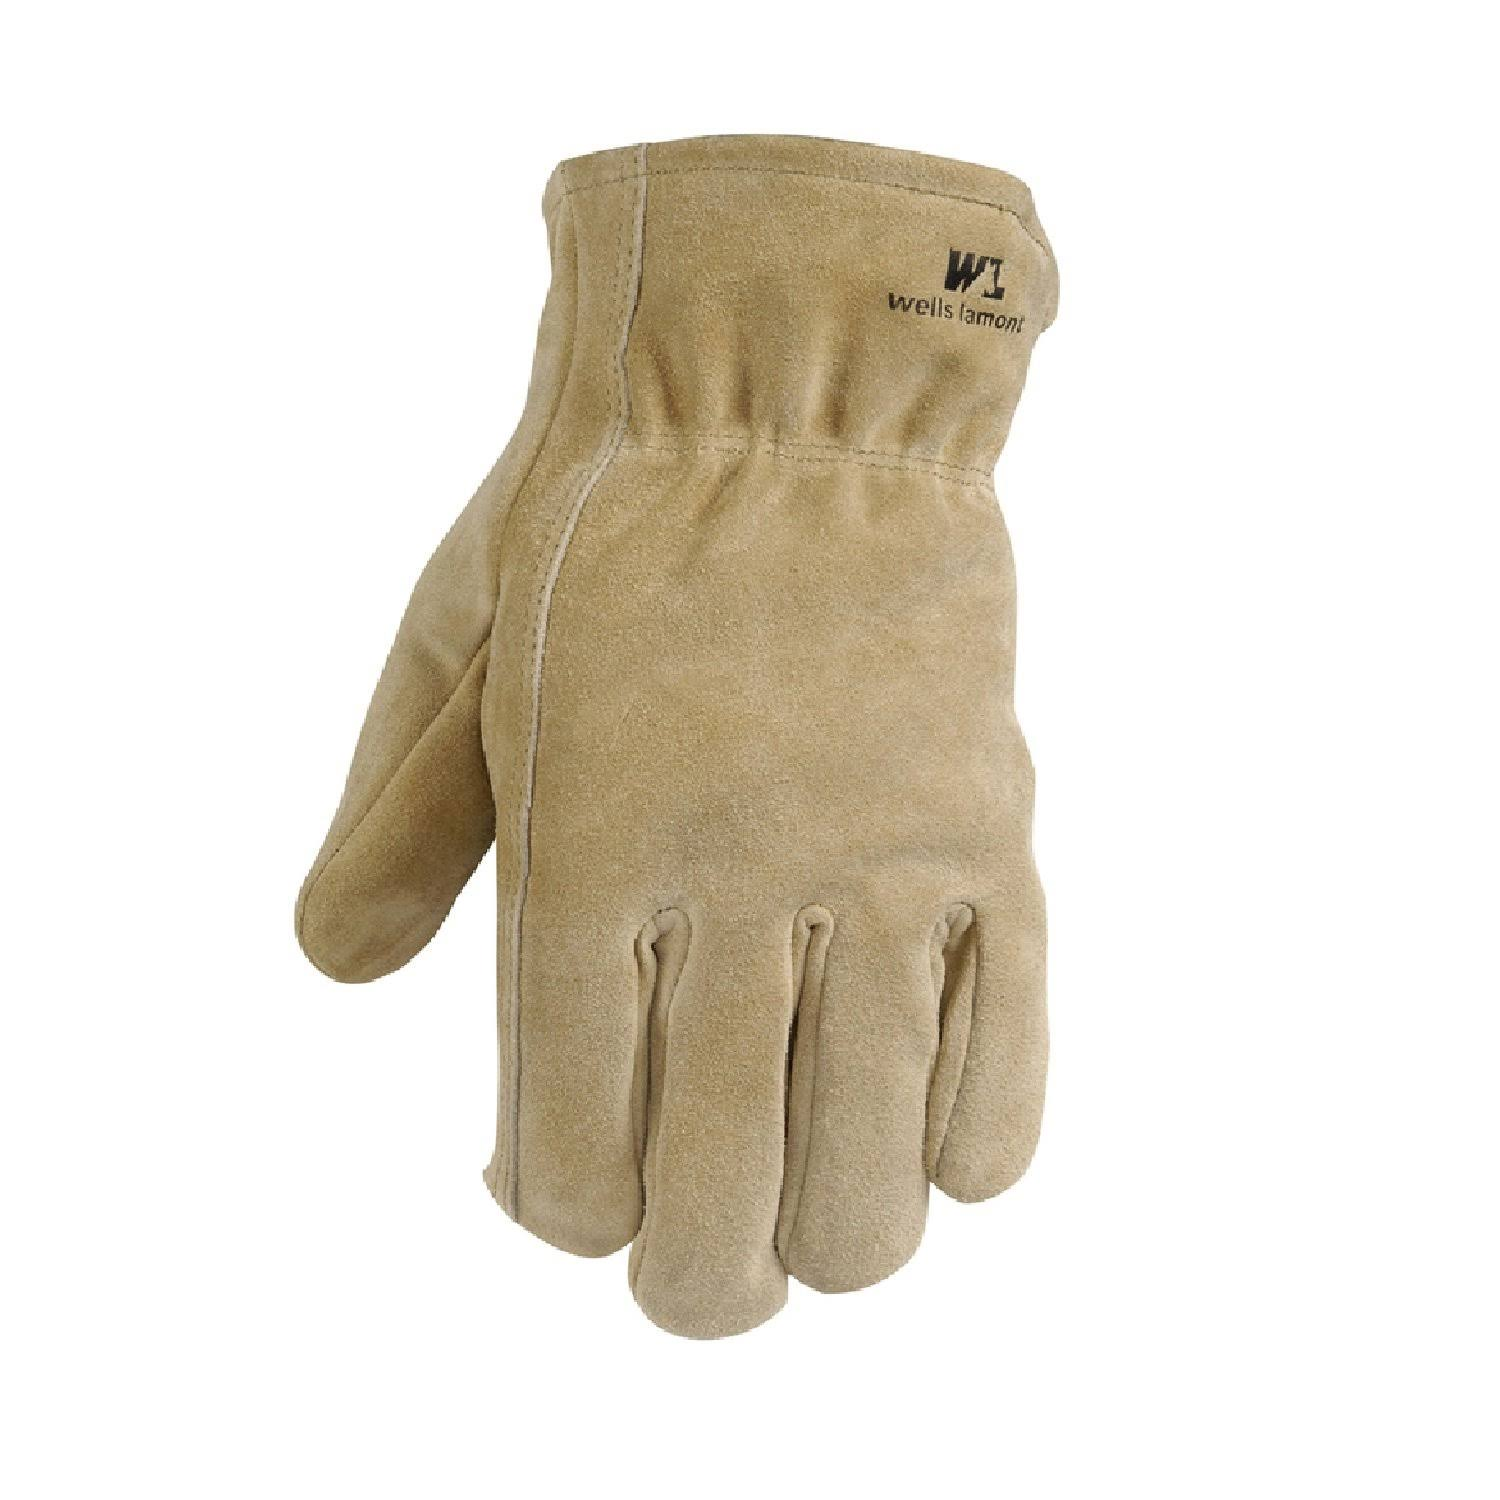 Leather Winter Work Gloves - Suede Cowhide